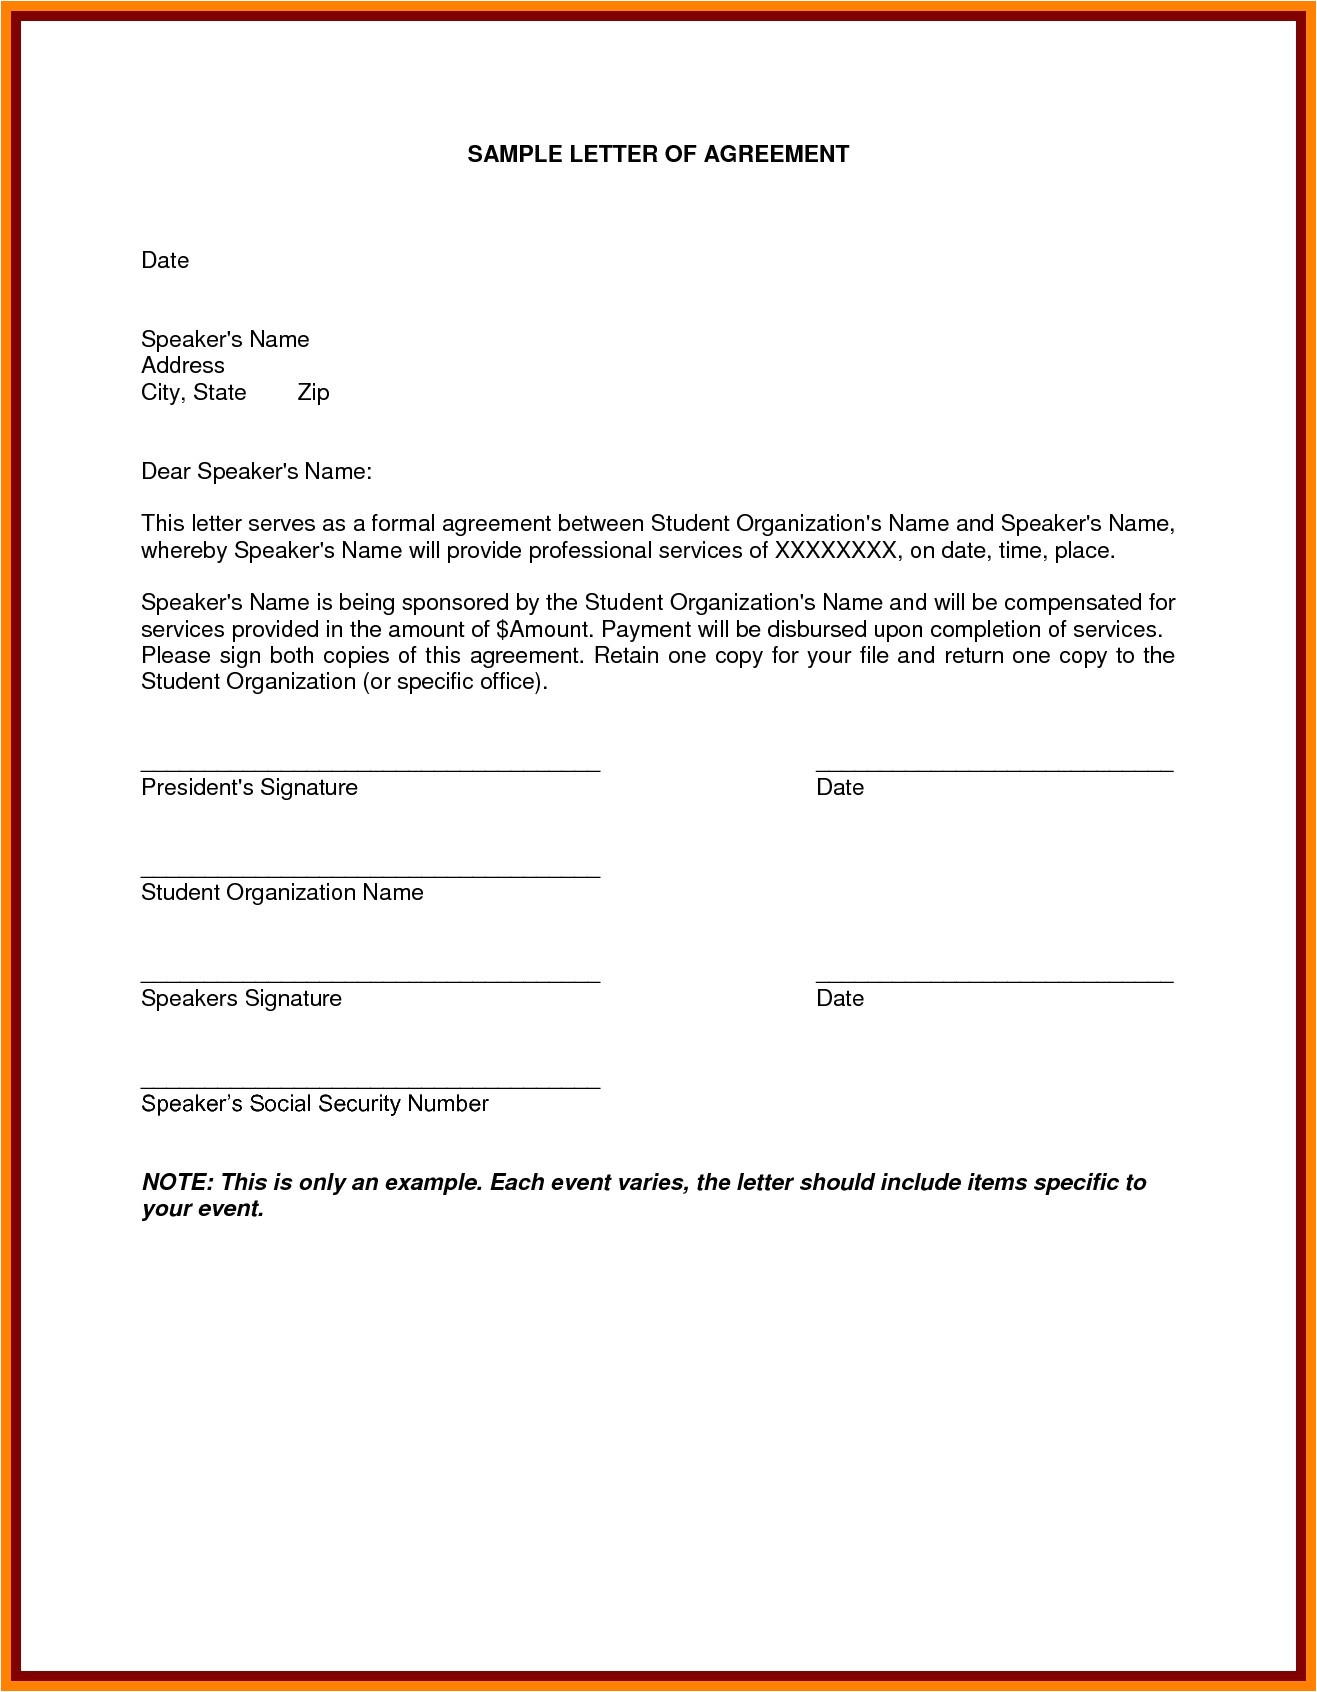 Soa Service Contract Template 8 Example Of Letter Of Agreement Penn Working Papers